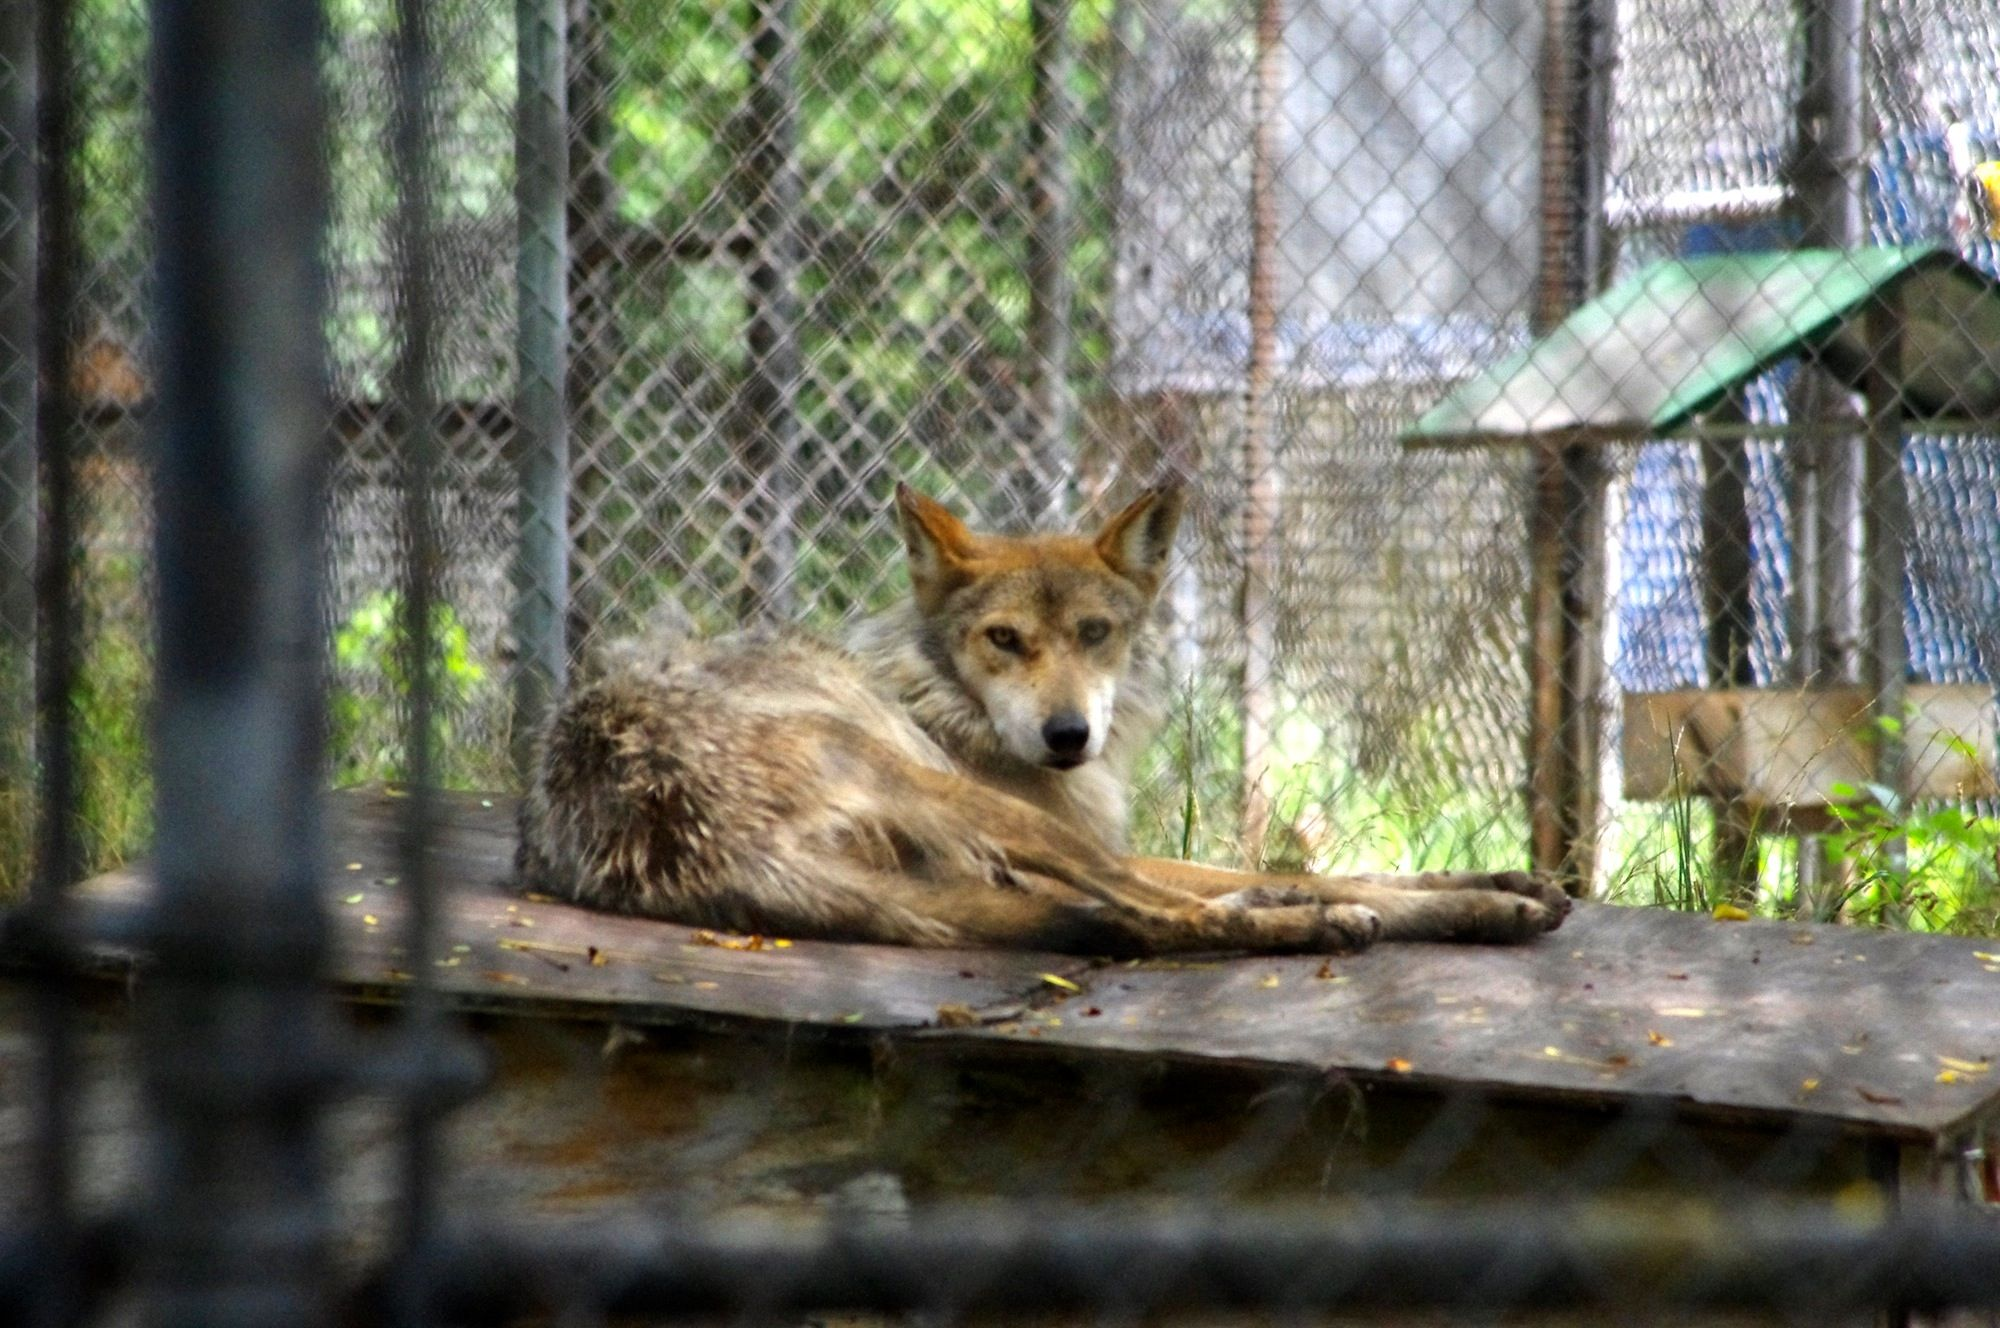 This is Carolita, one of our Mexican Wolves at the center